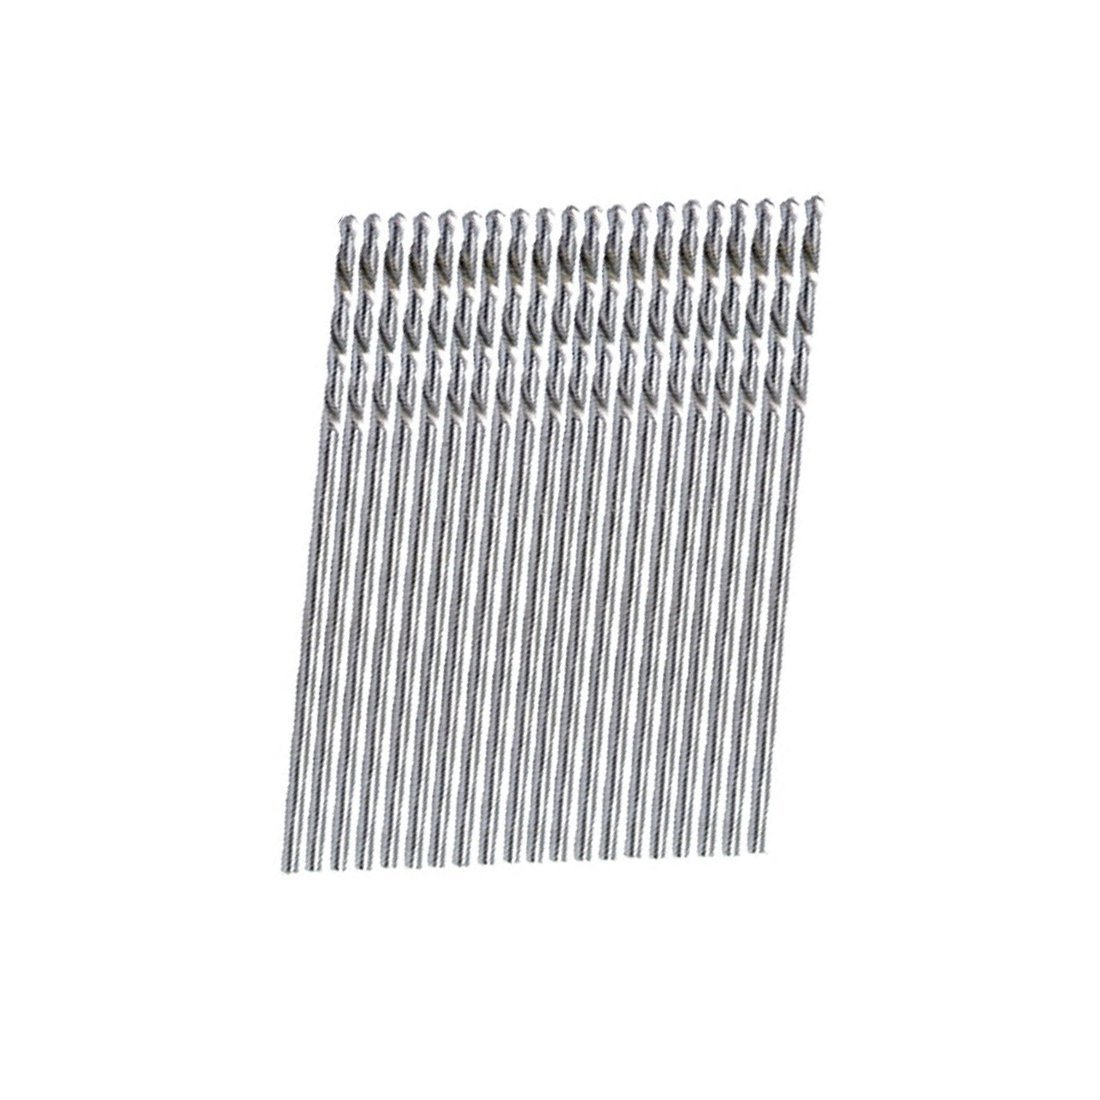 Straight Shank Twisted Drill Bit 20 Pieces Metal Straight Shank 0.8mm Twisted Drill Bit R SODIAL